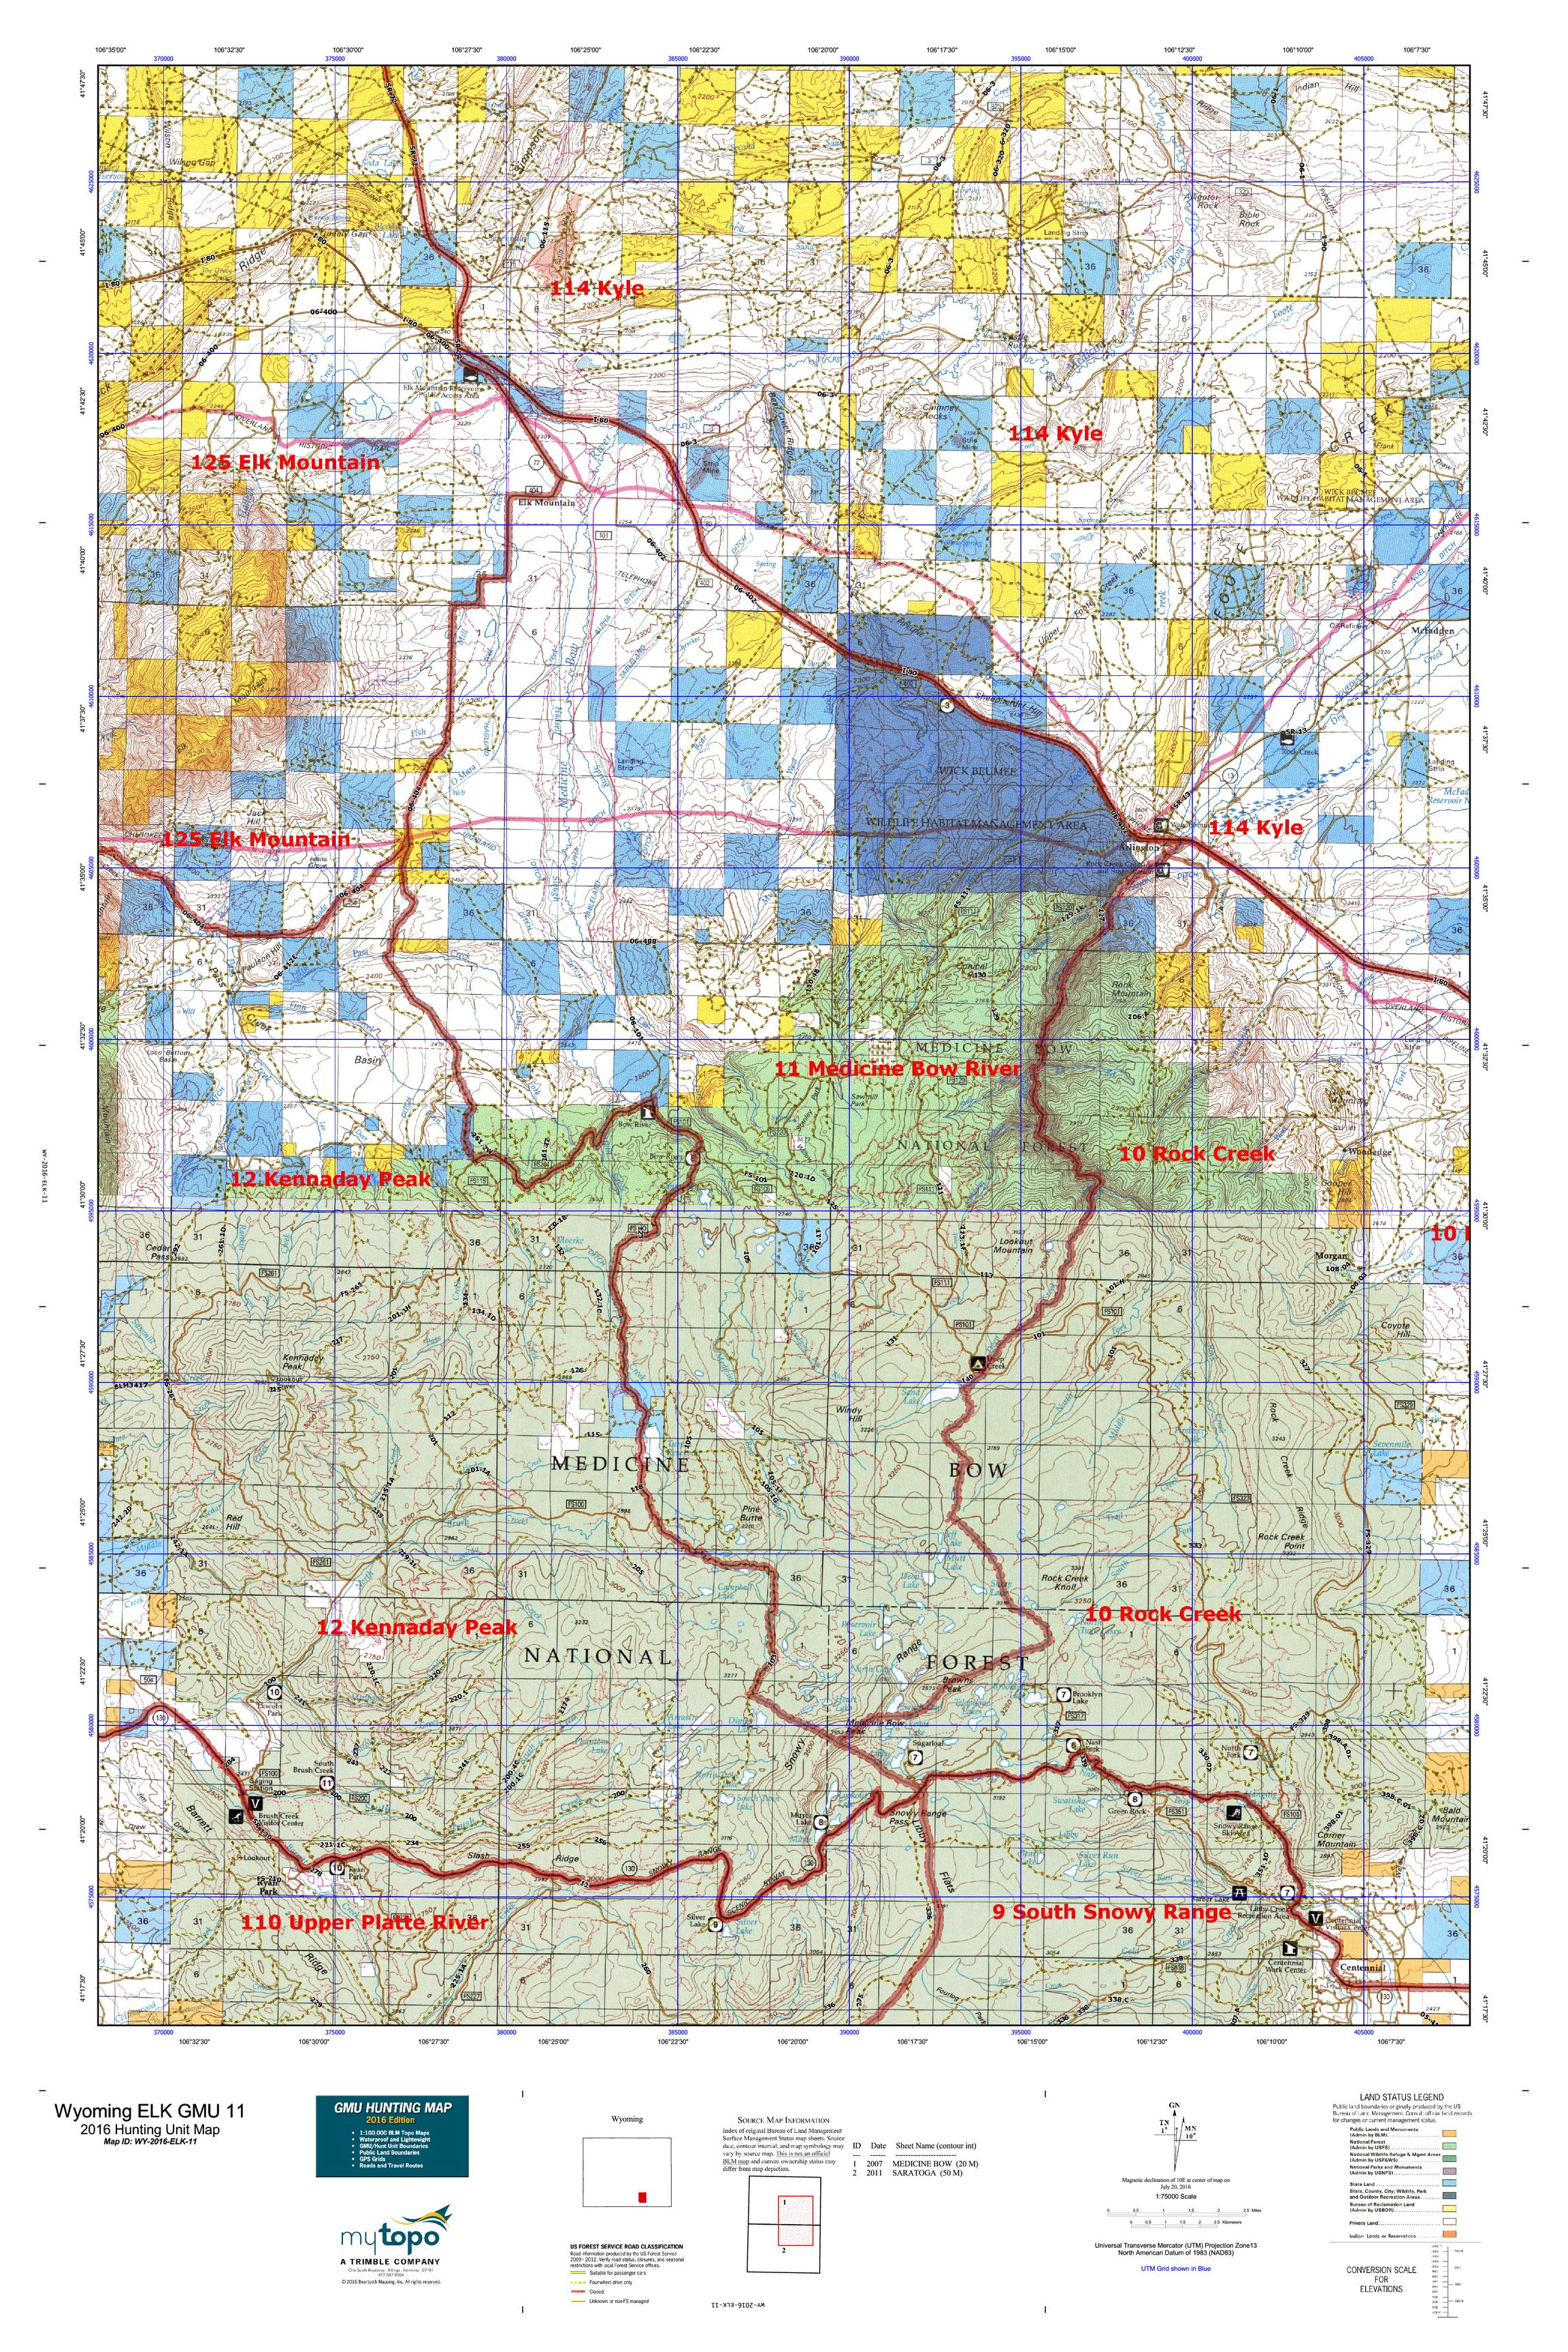 Wyoming elk gmu 11 map mytopo for Best states for hunting and fishing